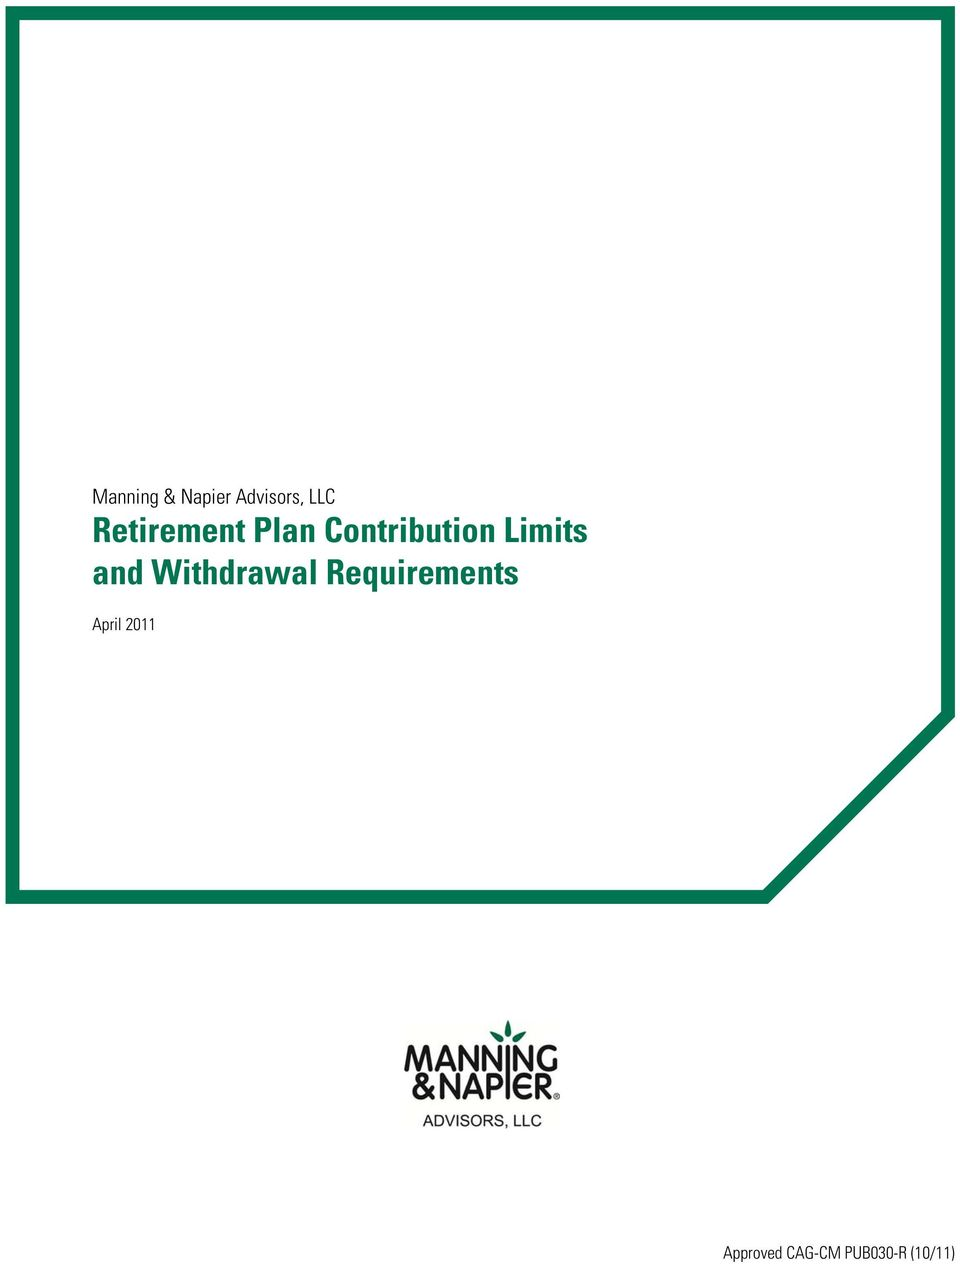 Limits and Withdrawal Requirements